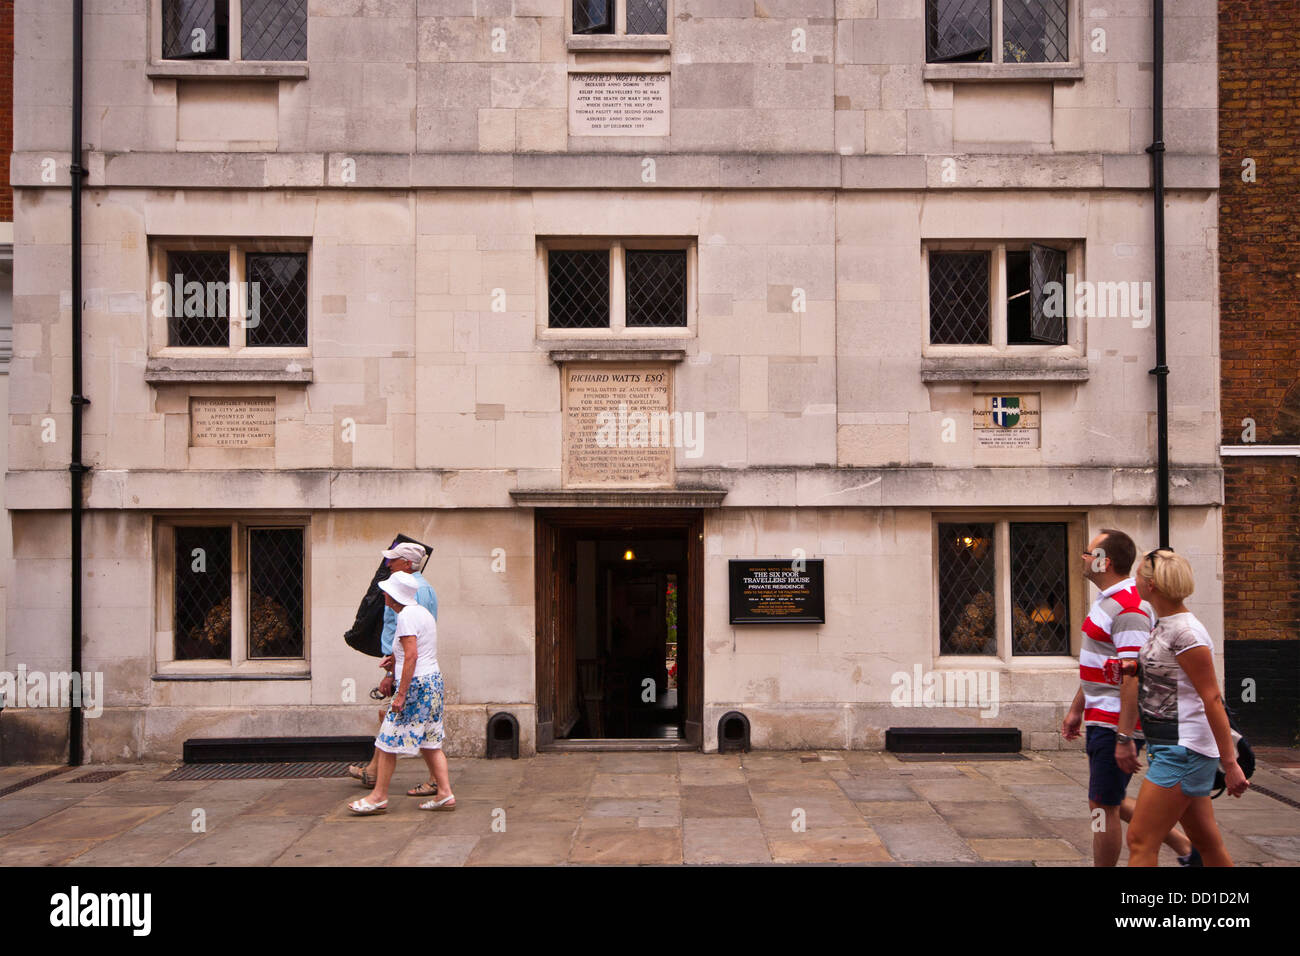 The Richard Watts Six Poor Travellers Charity House Rochester High Street UK - Stock Image